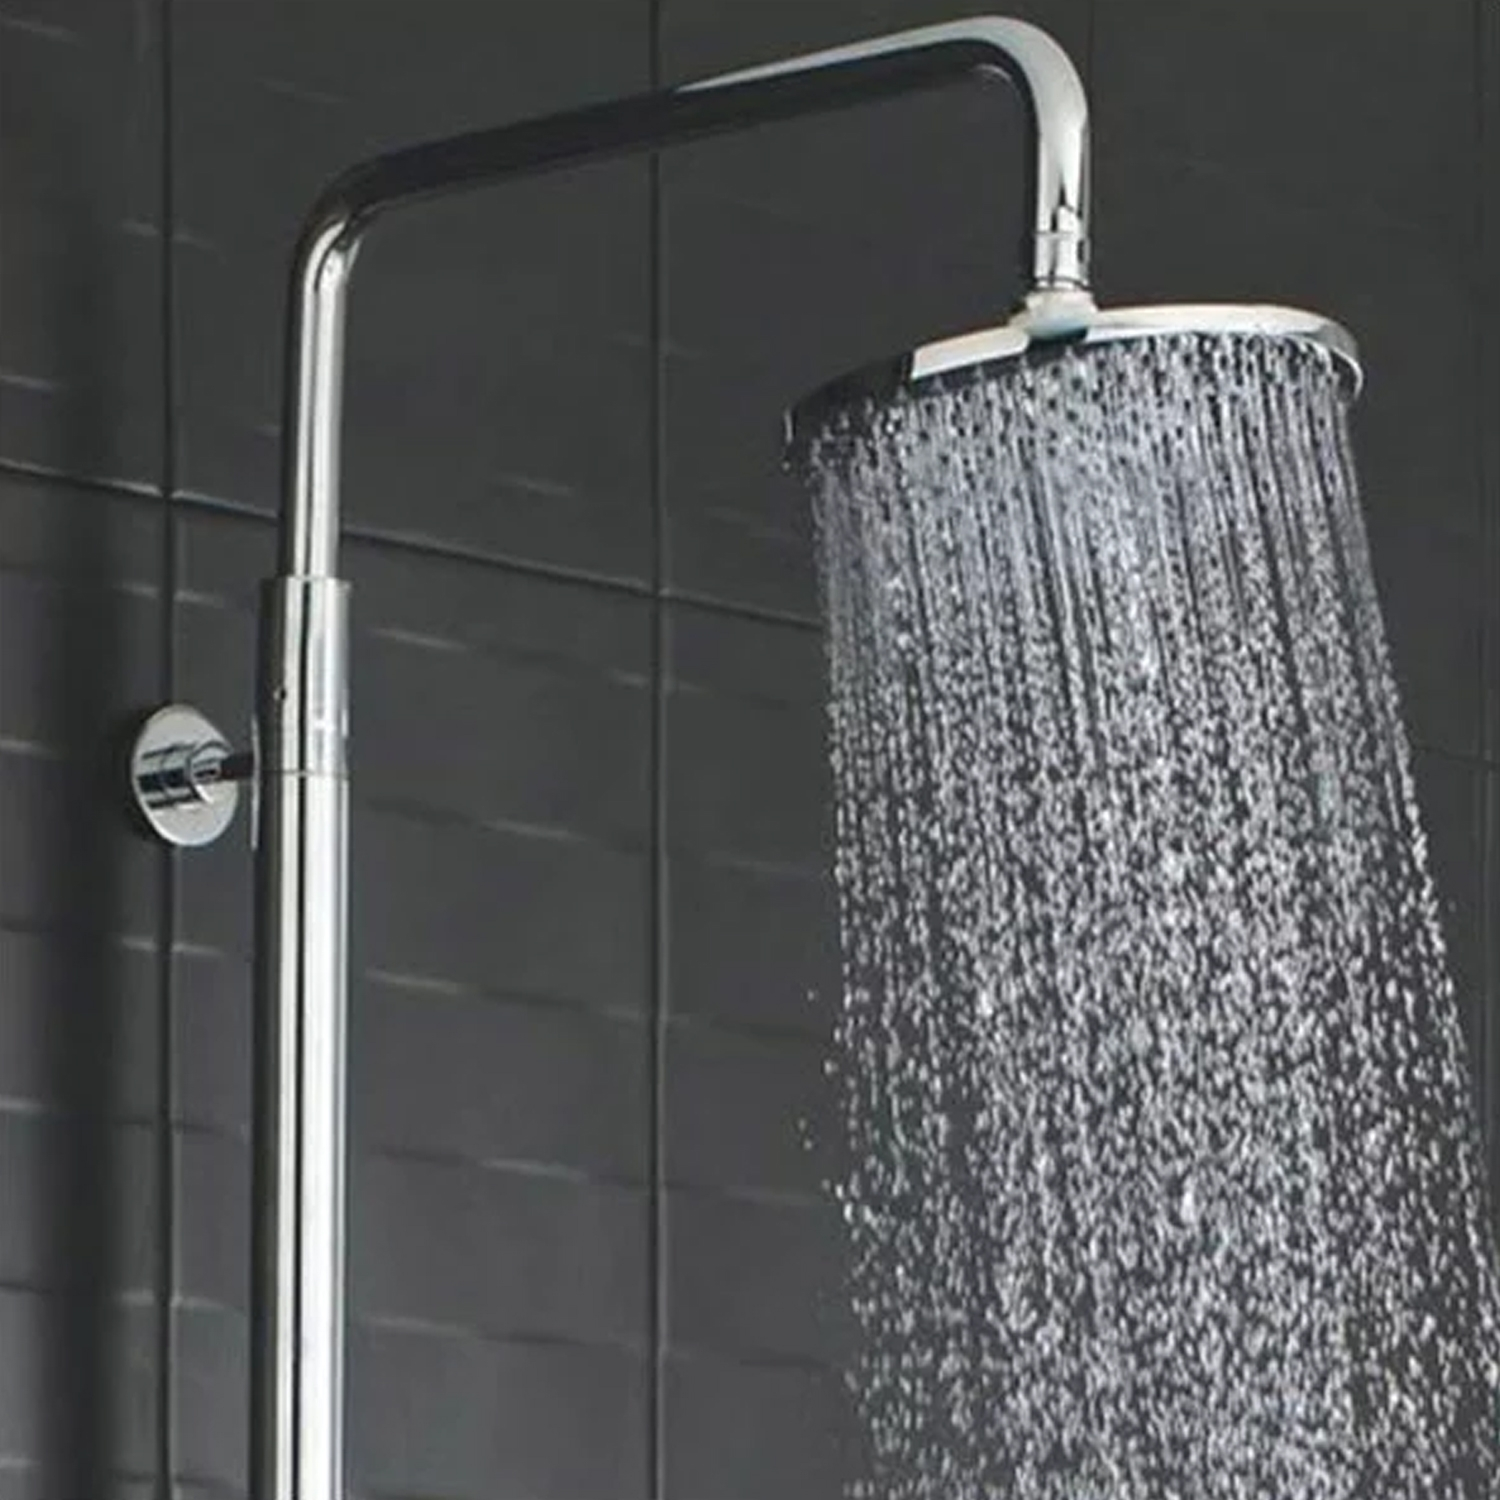 Hudson Reed Telescopic Shower Riser Kit 1 with Diverter, Pencil Handset and Fixed Head, Chrome-0